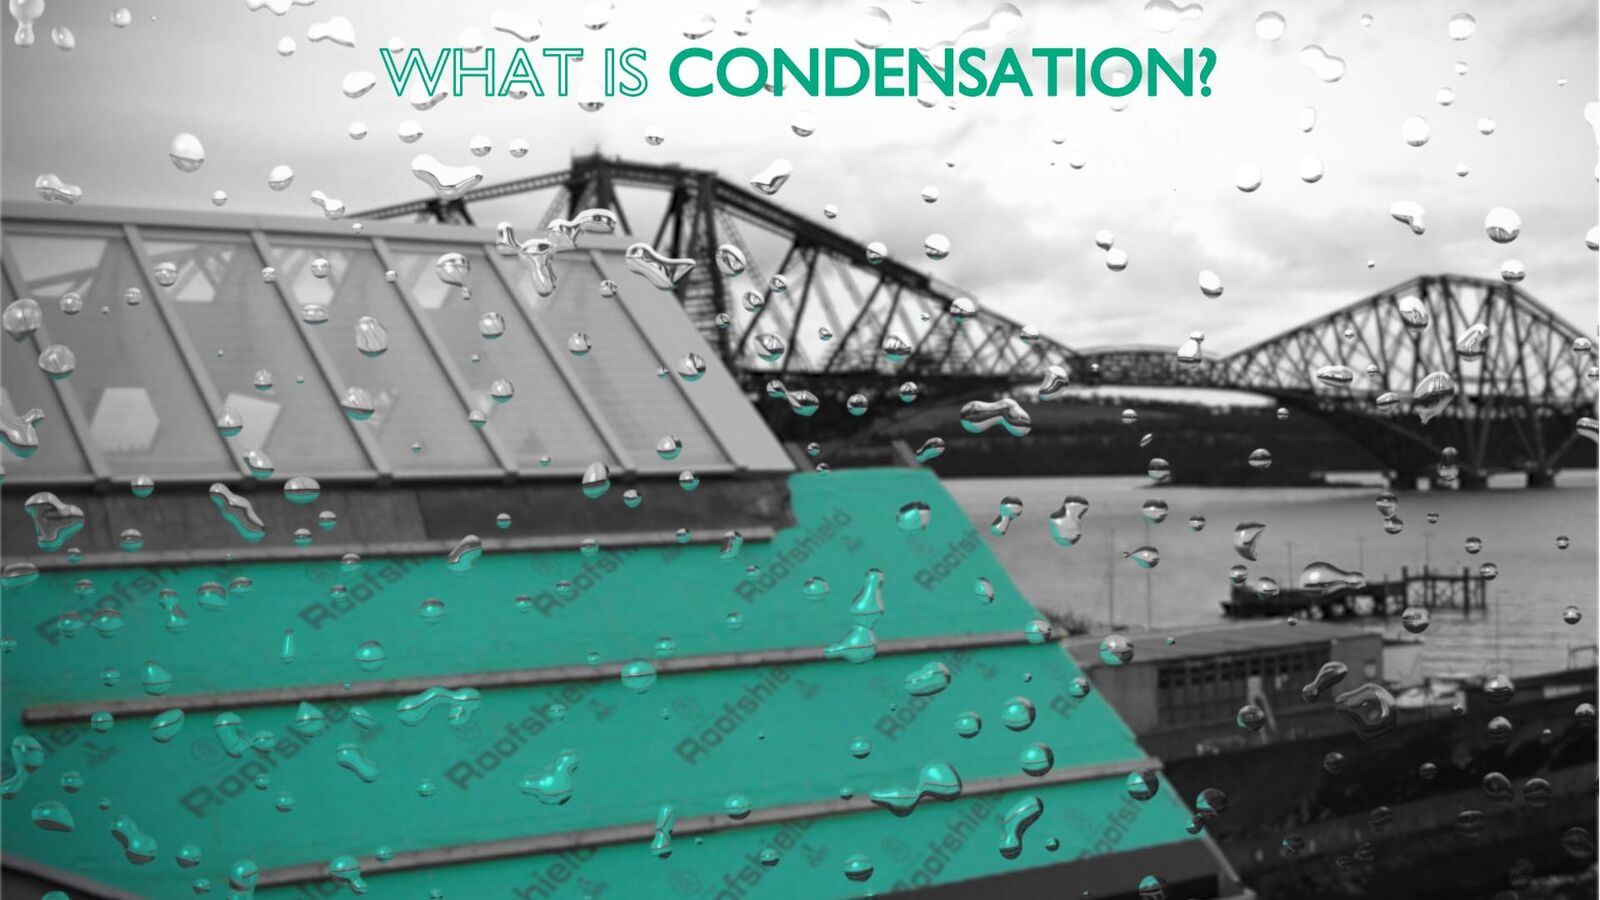 Roofshield - What is condensation?